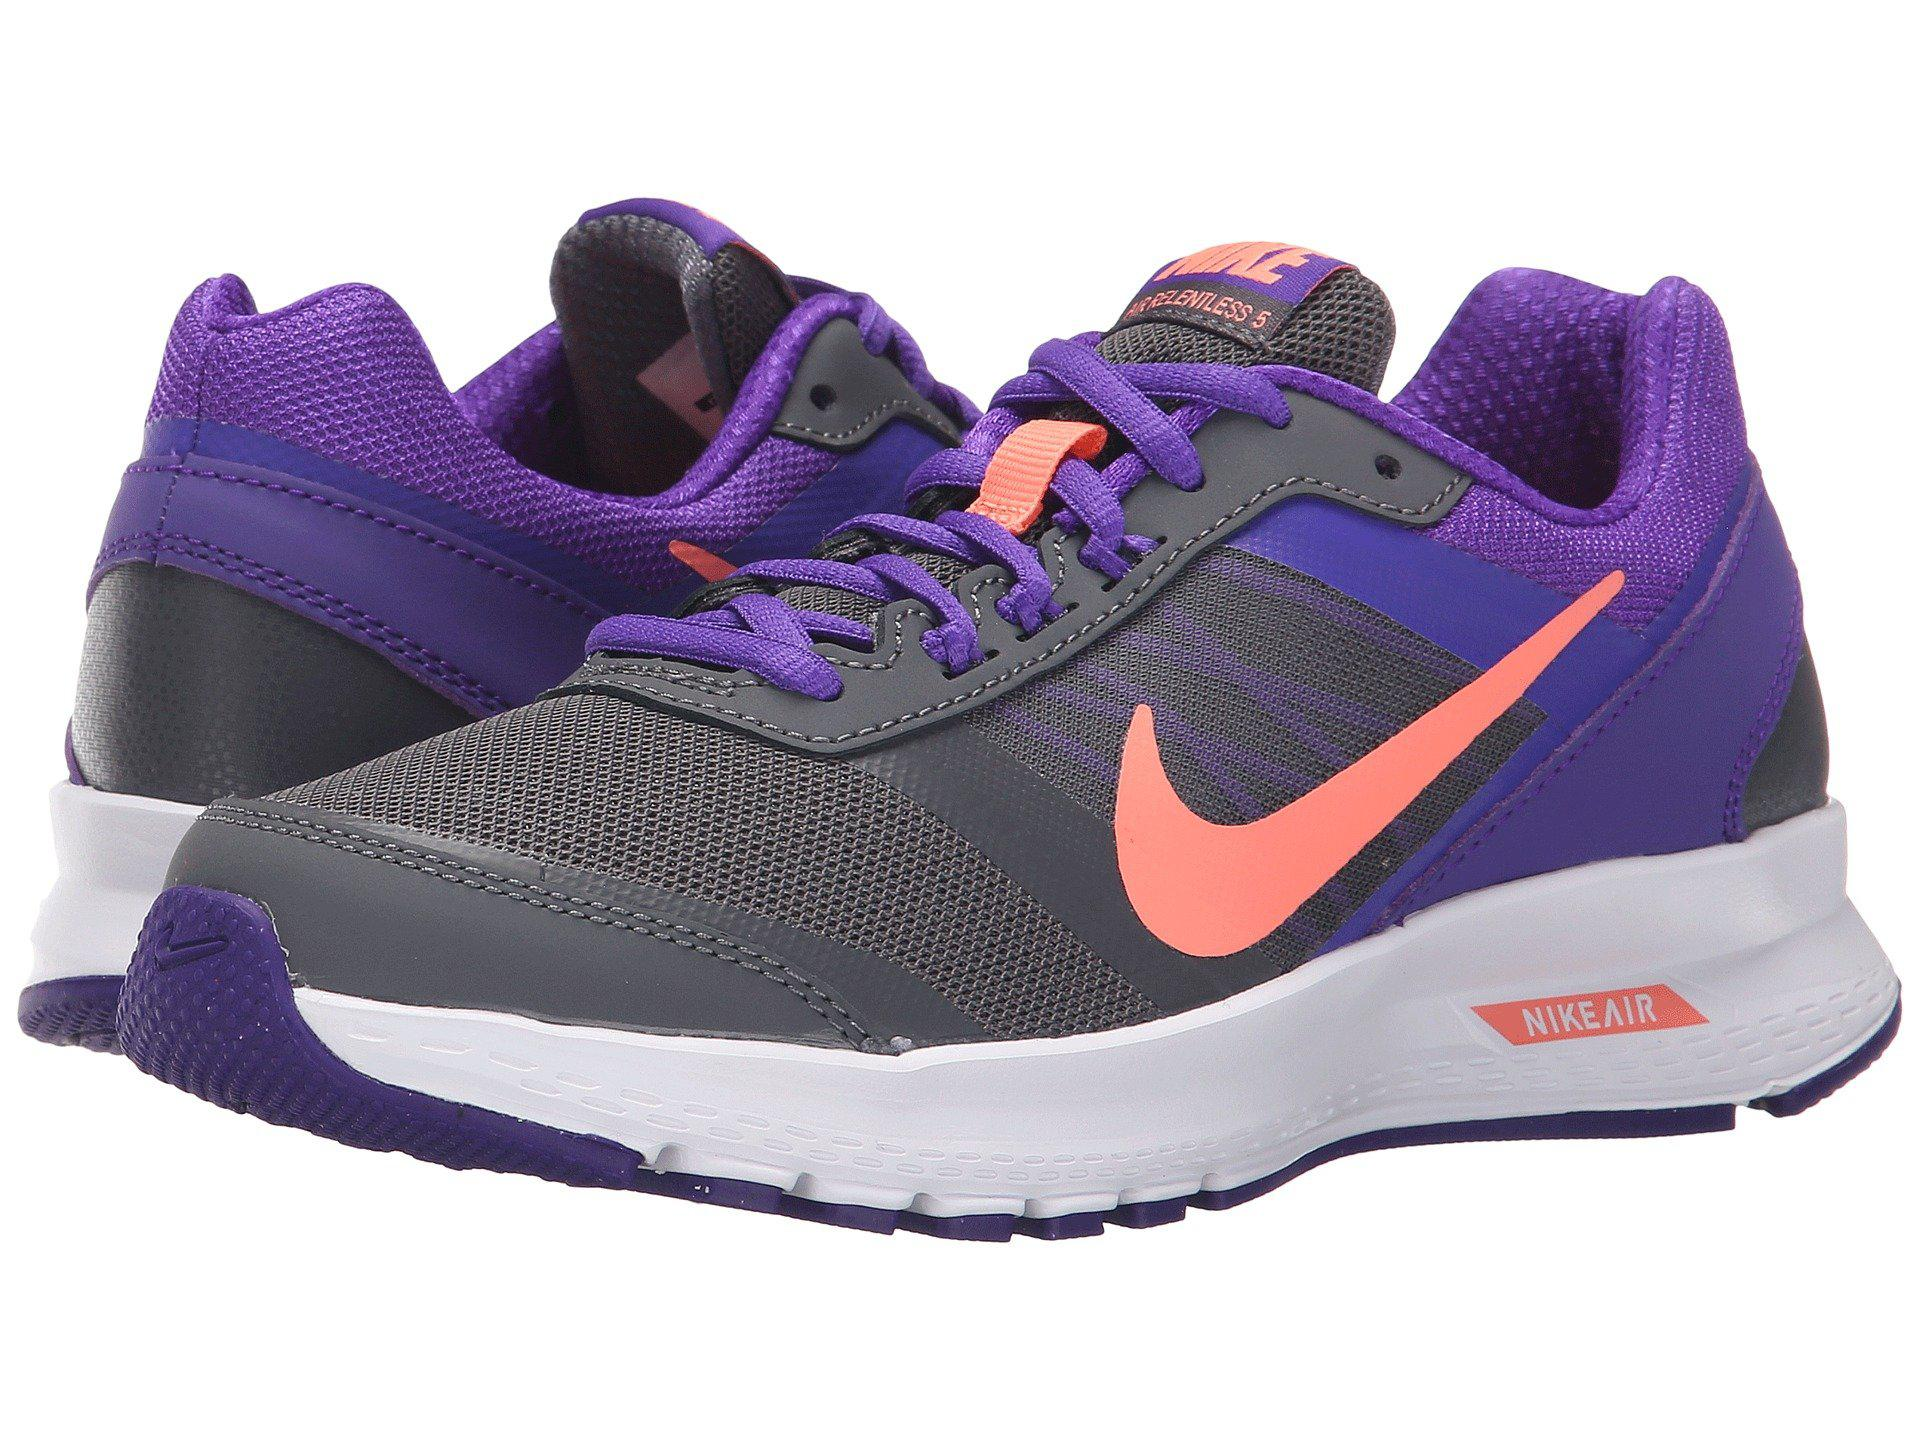 b7f87e2596 Nike Air Relentless 5 in Purple - Lyst